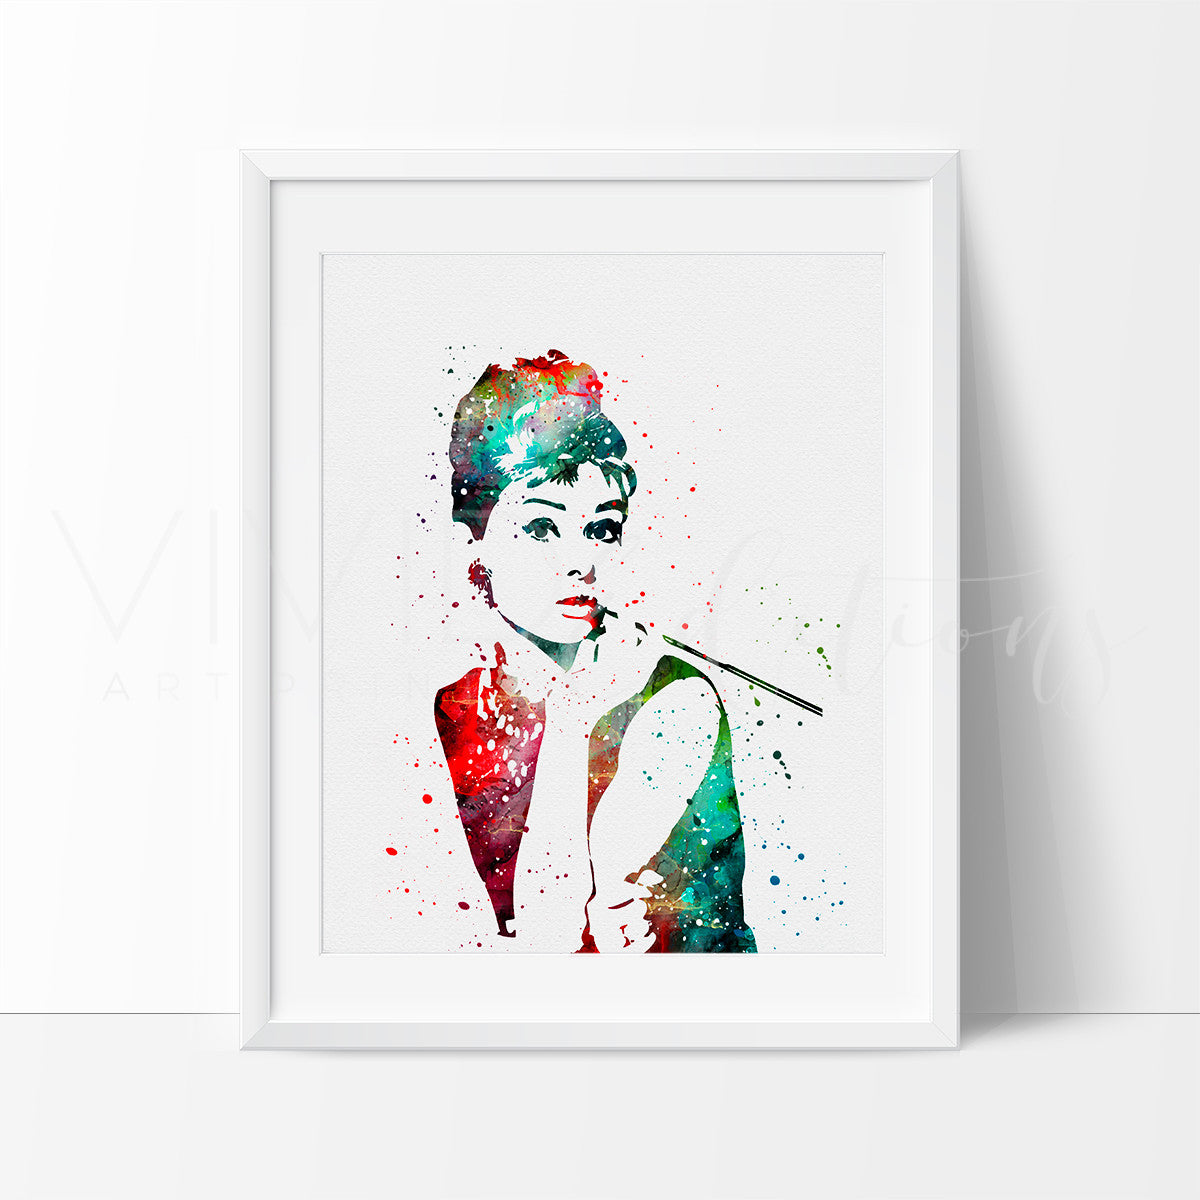 Audrey Hepburn, Breakfast at Tiffany's Watercolor Art Print Art Print - VIVIDEDITIONS